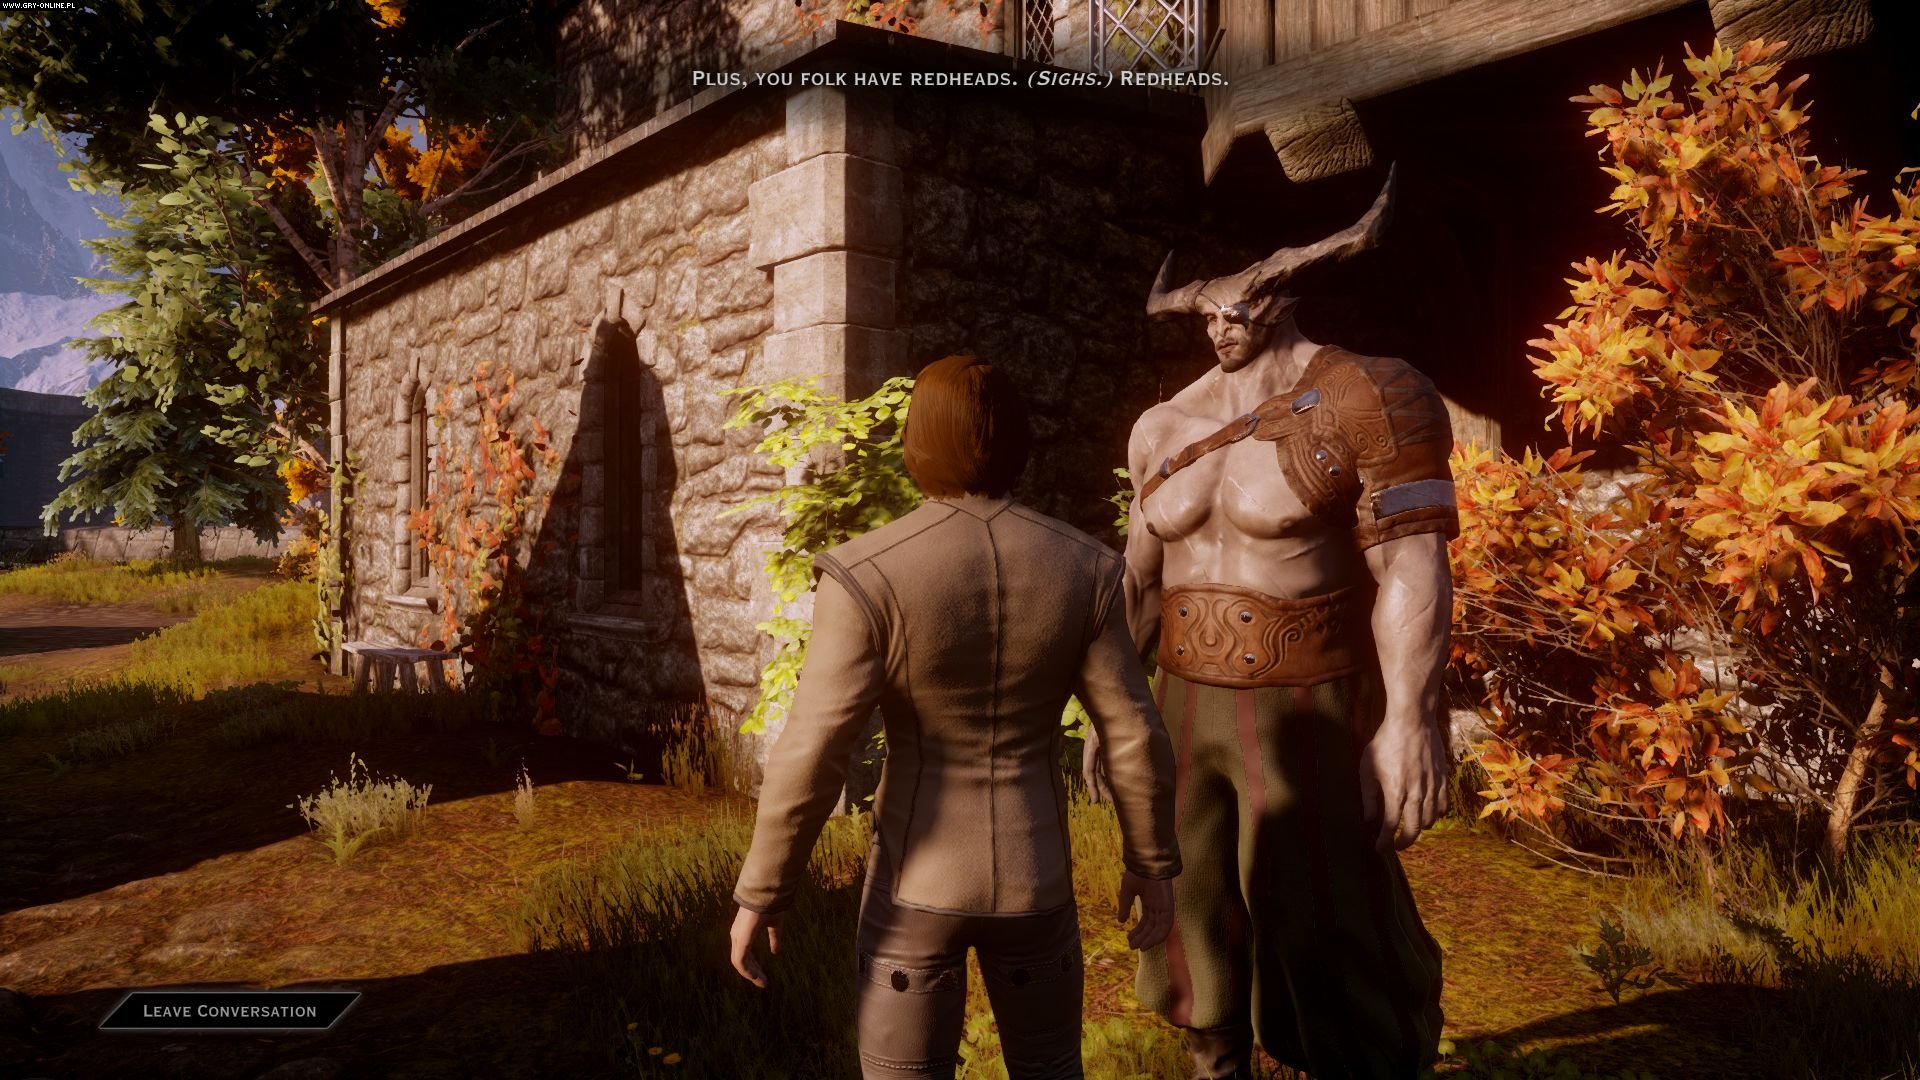 Dragon Age: Inquisition PC, X360, PS3 Games Image 7/225, BioWare Corporation, Electronic Arts Inc.